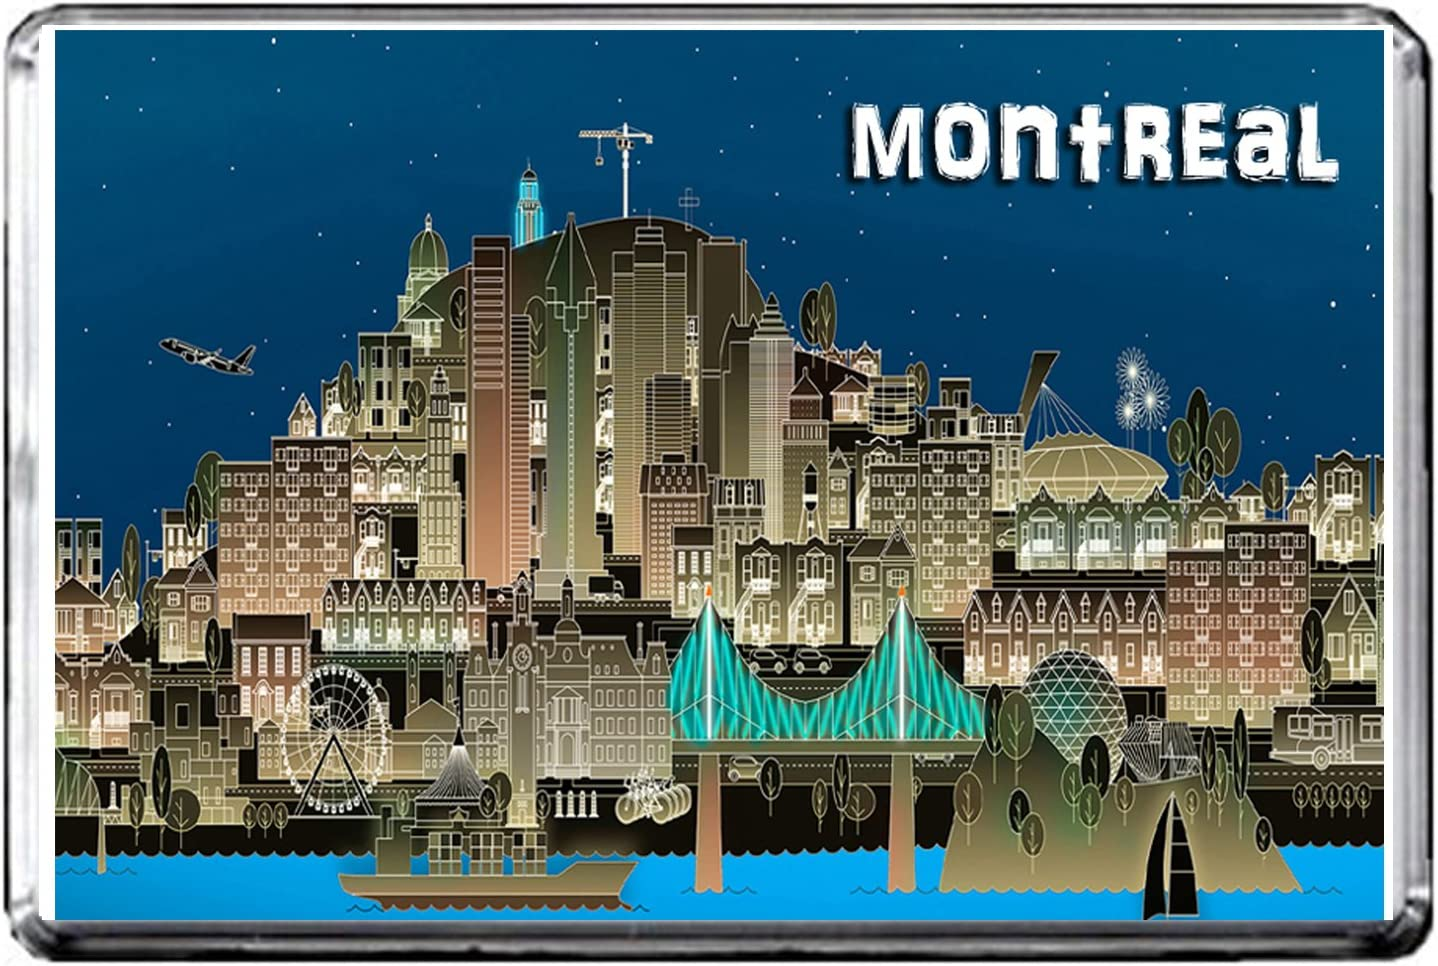 GIFTSCITY D85 MONTREAL FRIDGE MAGNET CANADA TRAVEL PHOTO REFRIGERATOR MAGNET